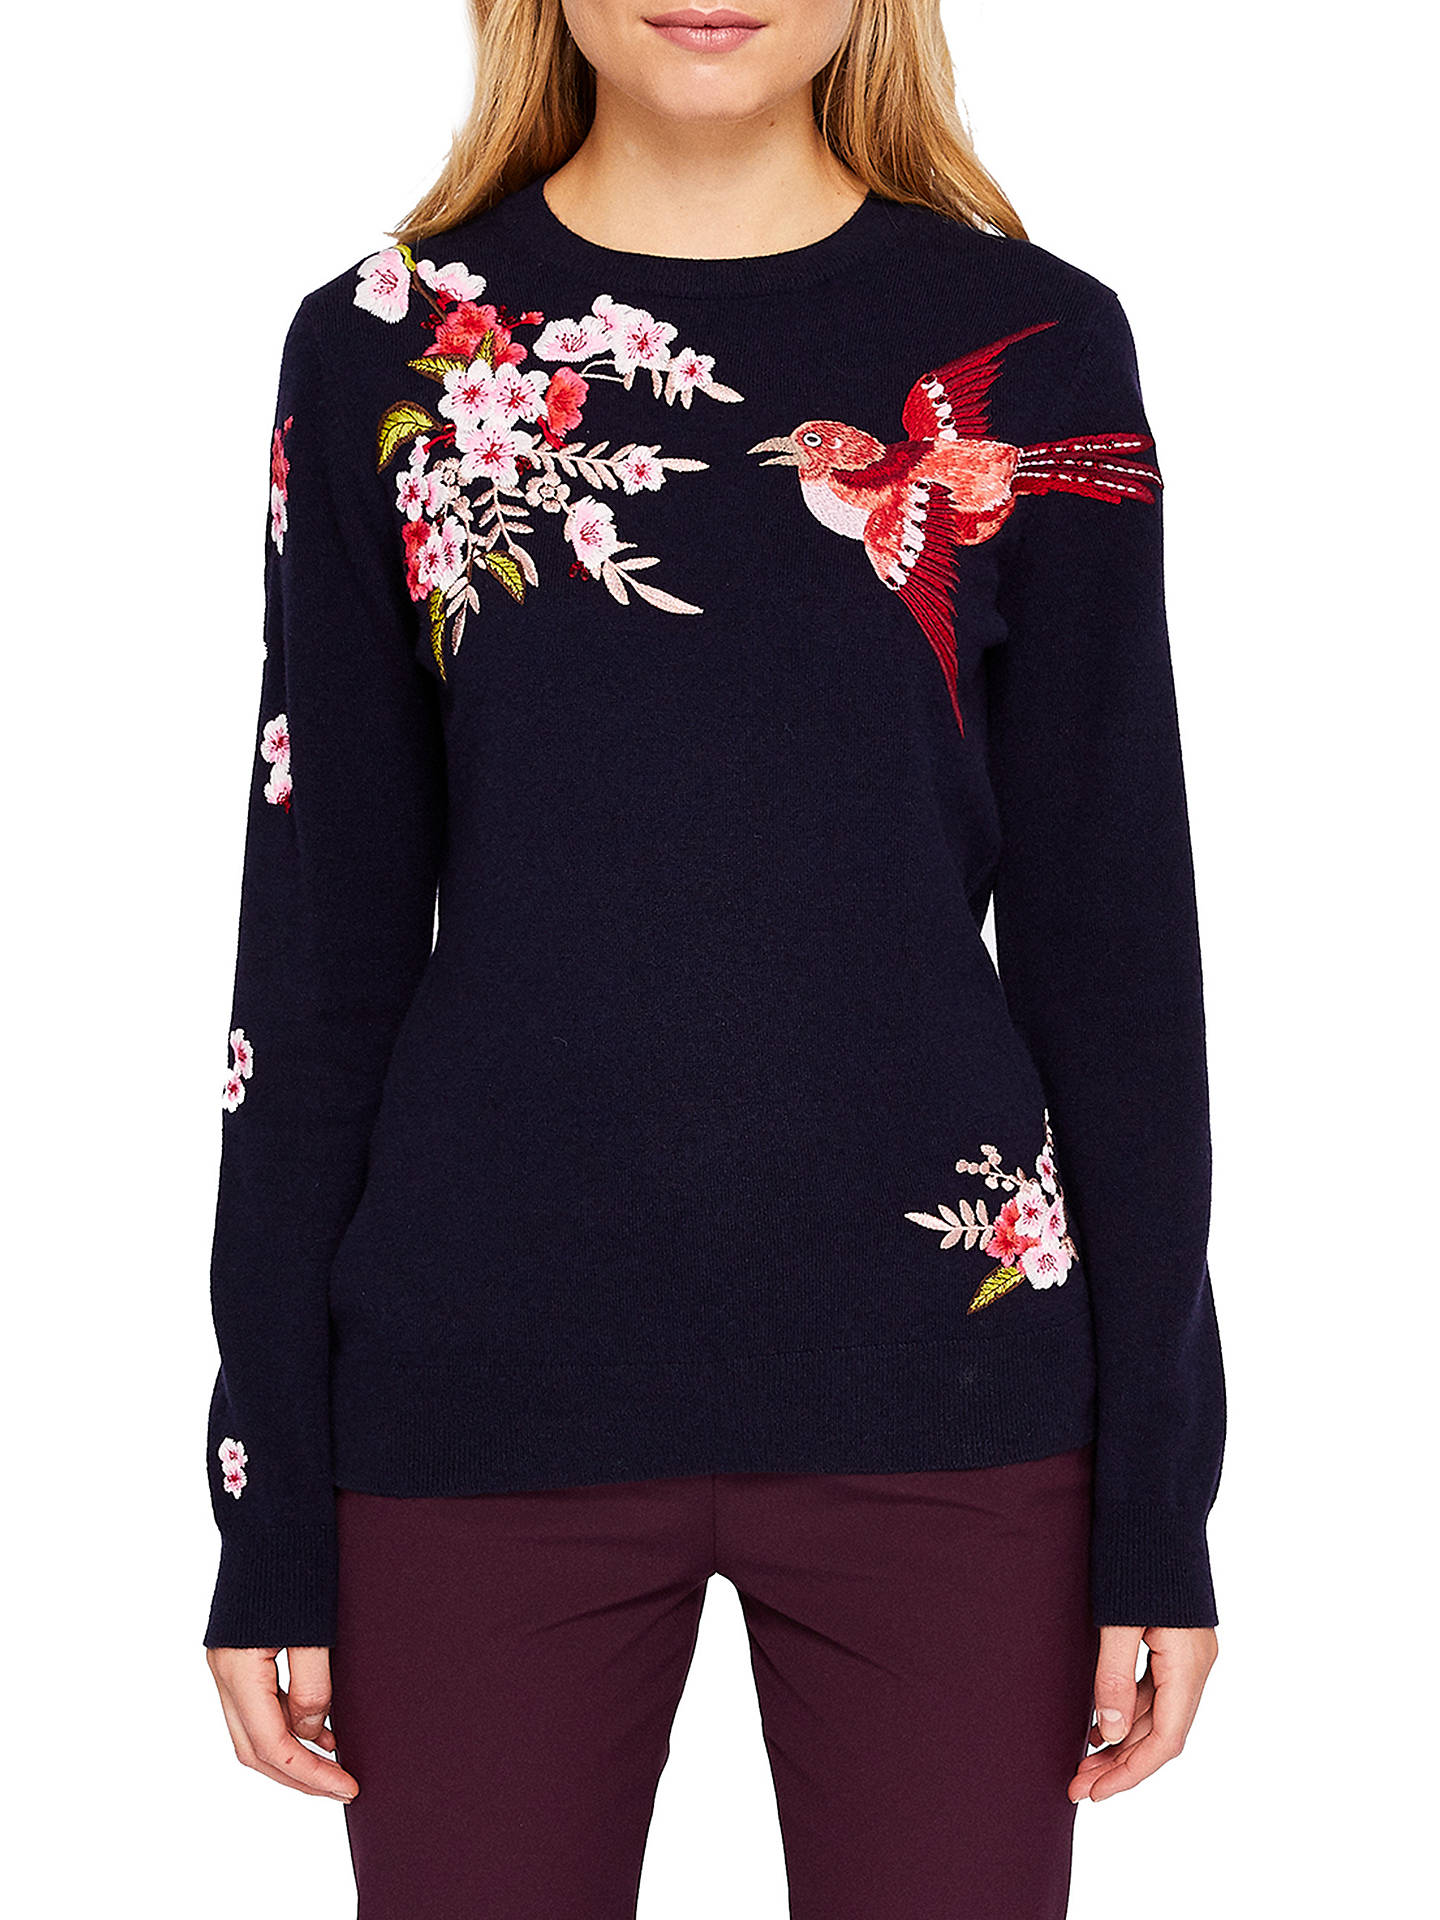 9cd6de390 Buy Ted Baker Auroraa Bird Blossom Embroidered Jumper